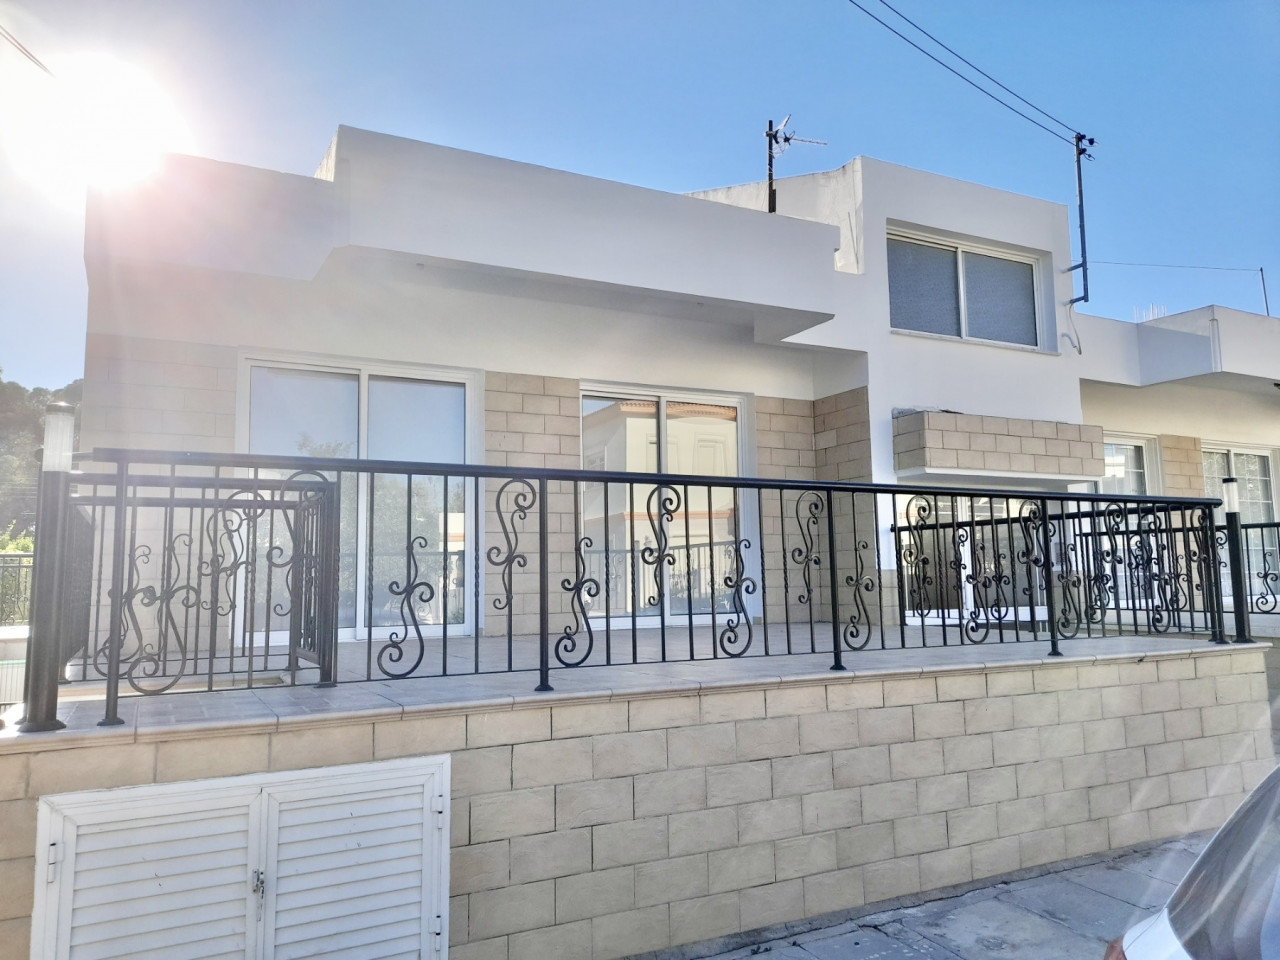 House (Semi detached) in Archangelos, Nicosia for Rent  3 Be.....